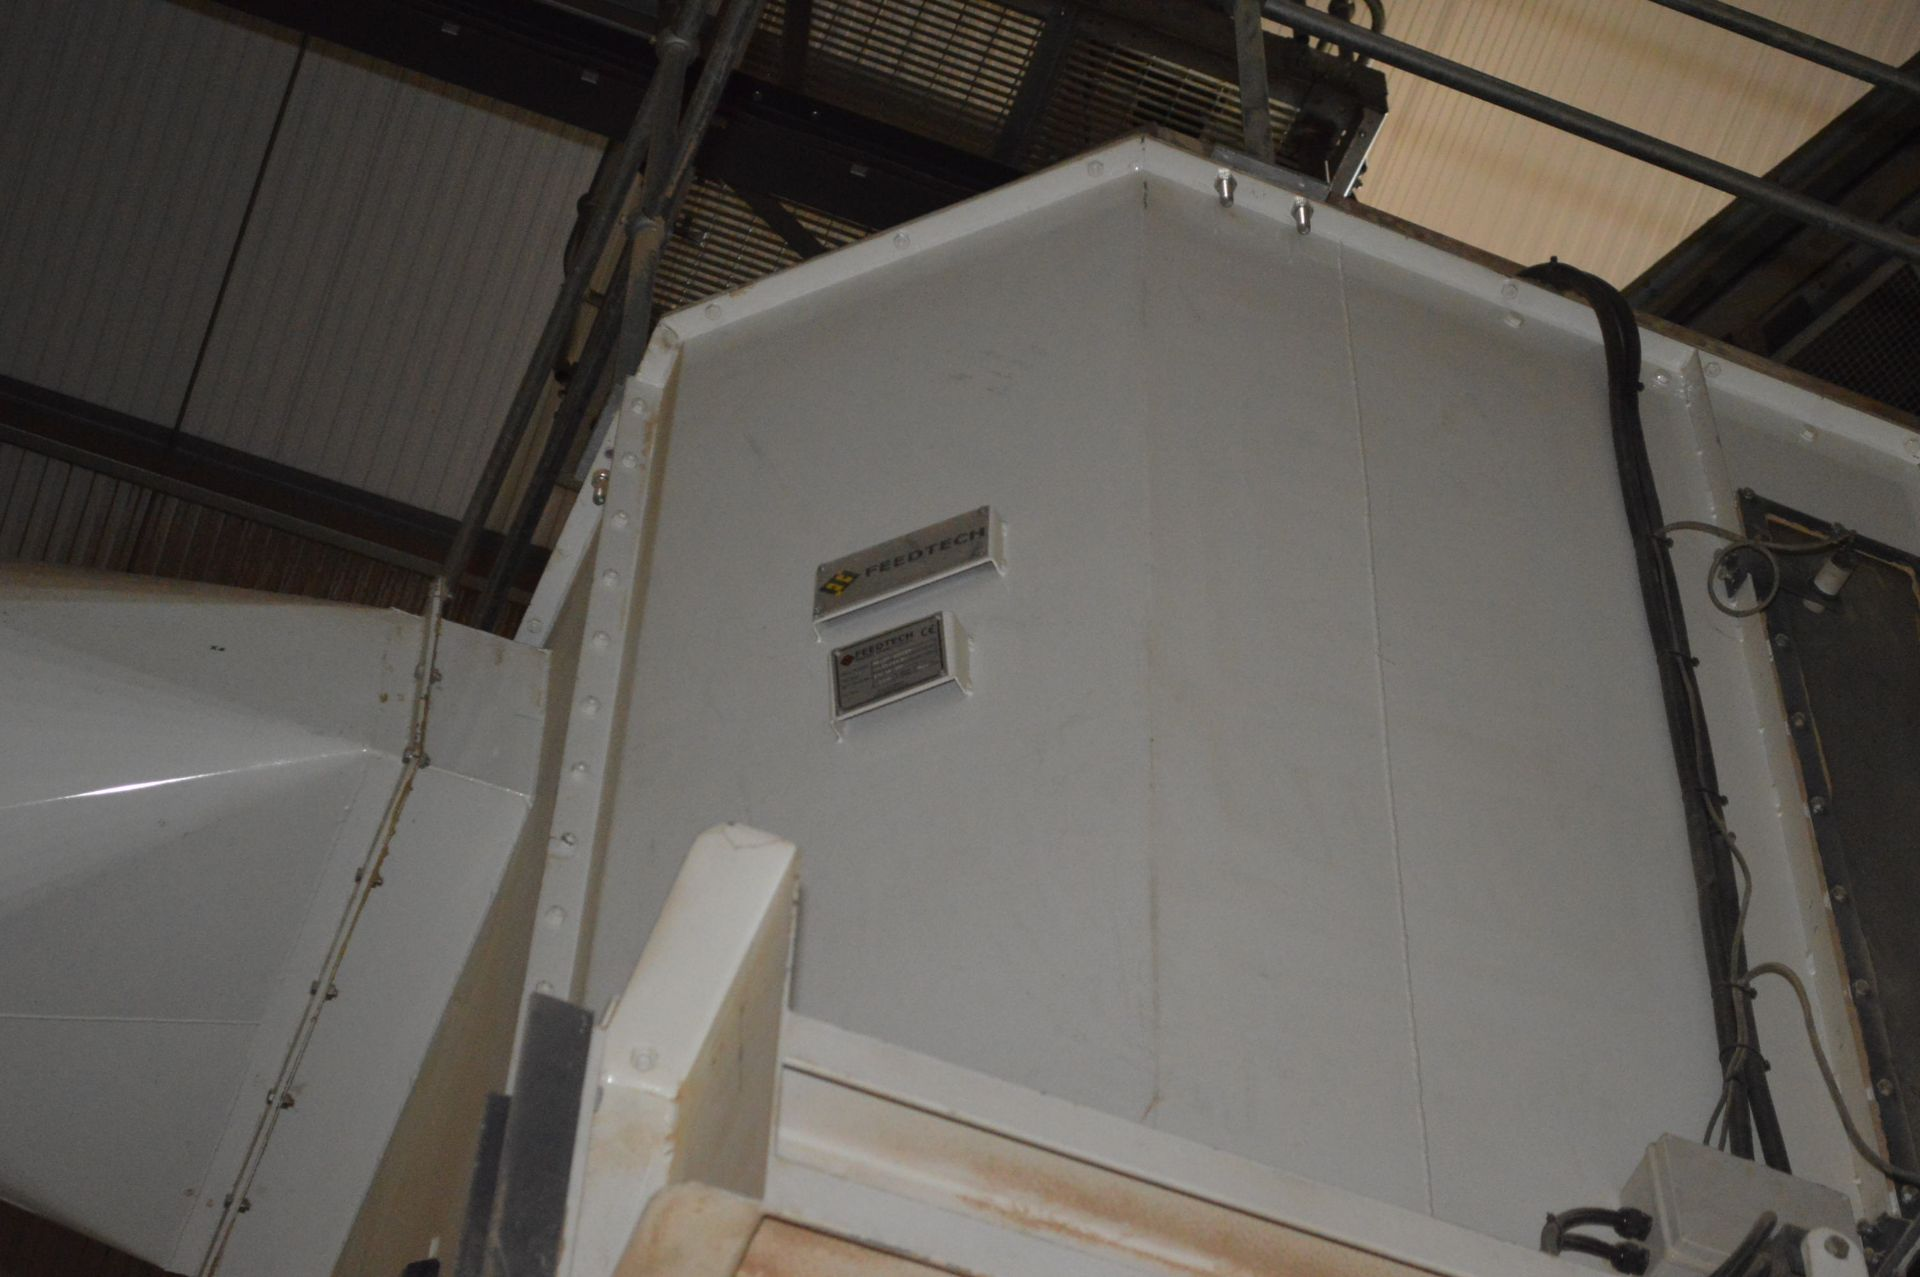 Lot 19 - Feedtech STEEL CASED COUNTERFLOW BOX COOLER, approx. 2.6m x 2.6m x 1.9 m deep-on-casing, with